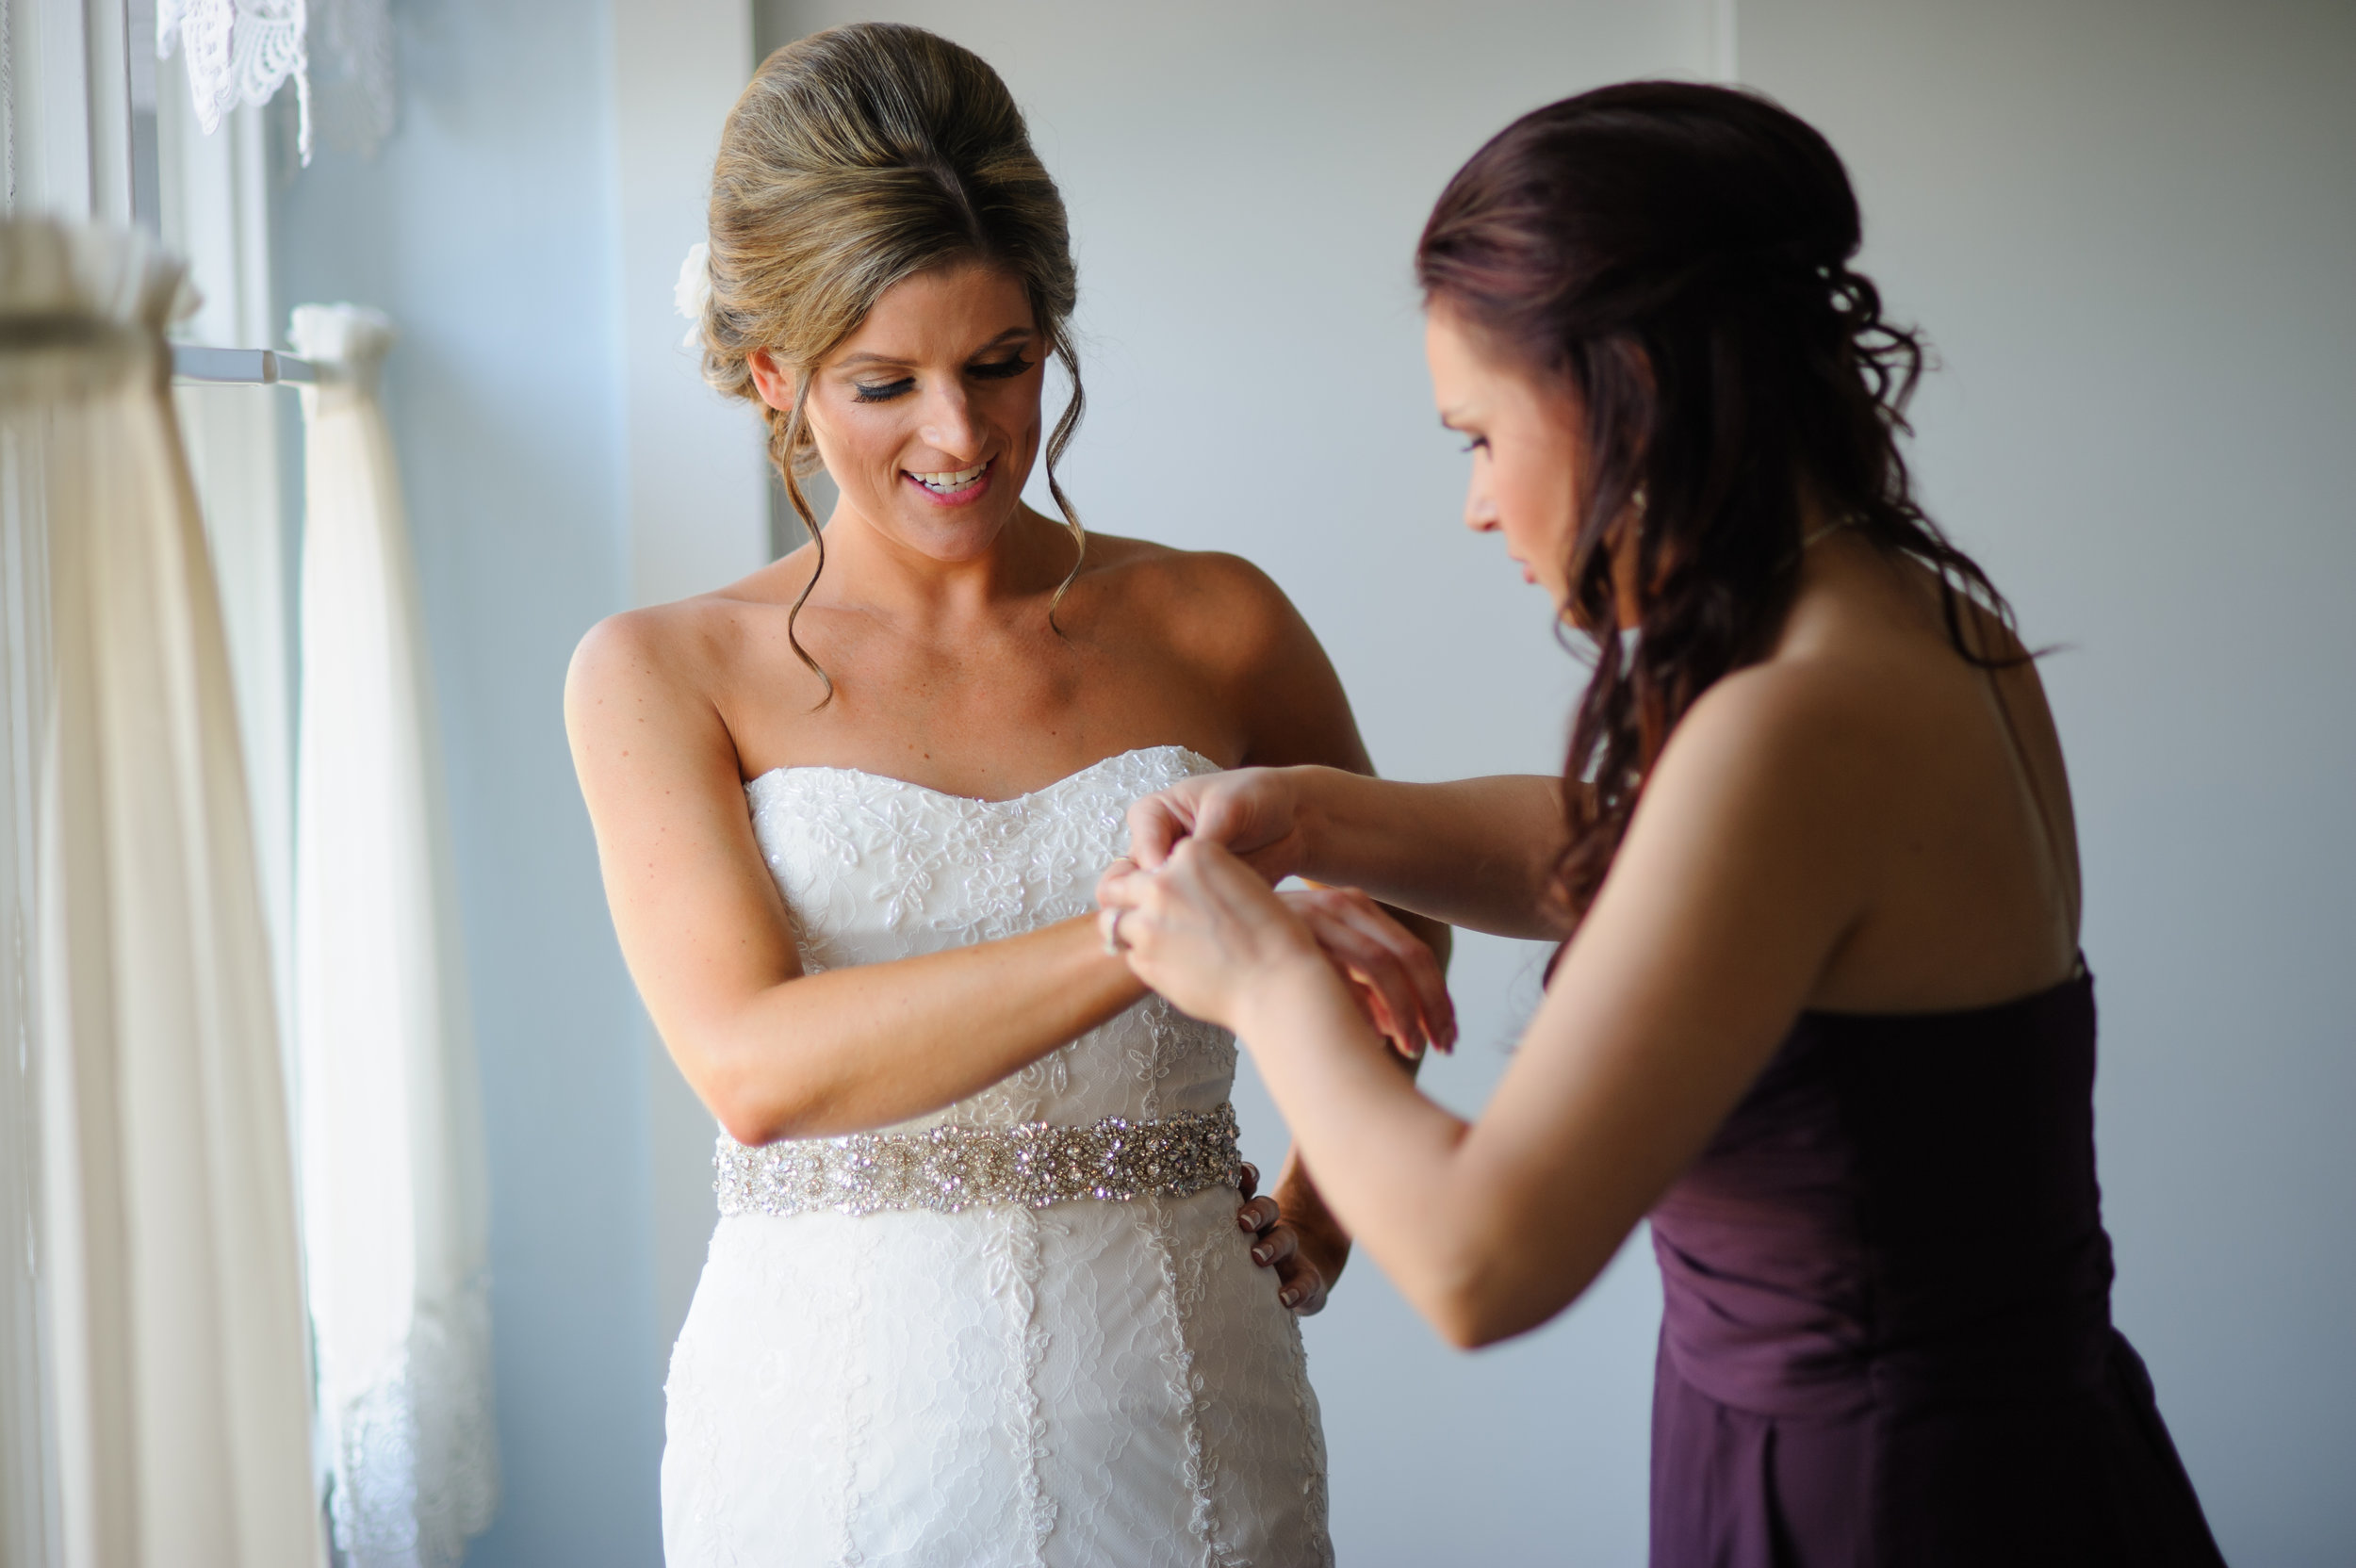 susan-brad-004-sacramento-wedding-photographer-katherine-nicole-photography.JPG